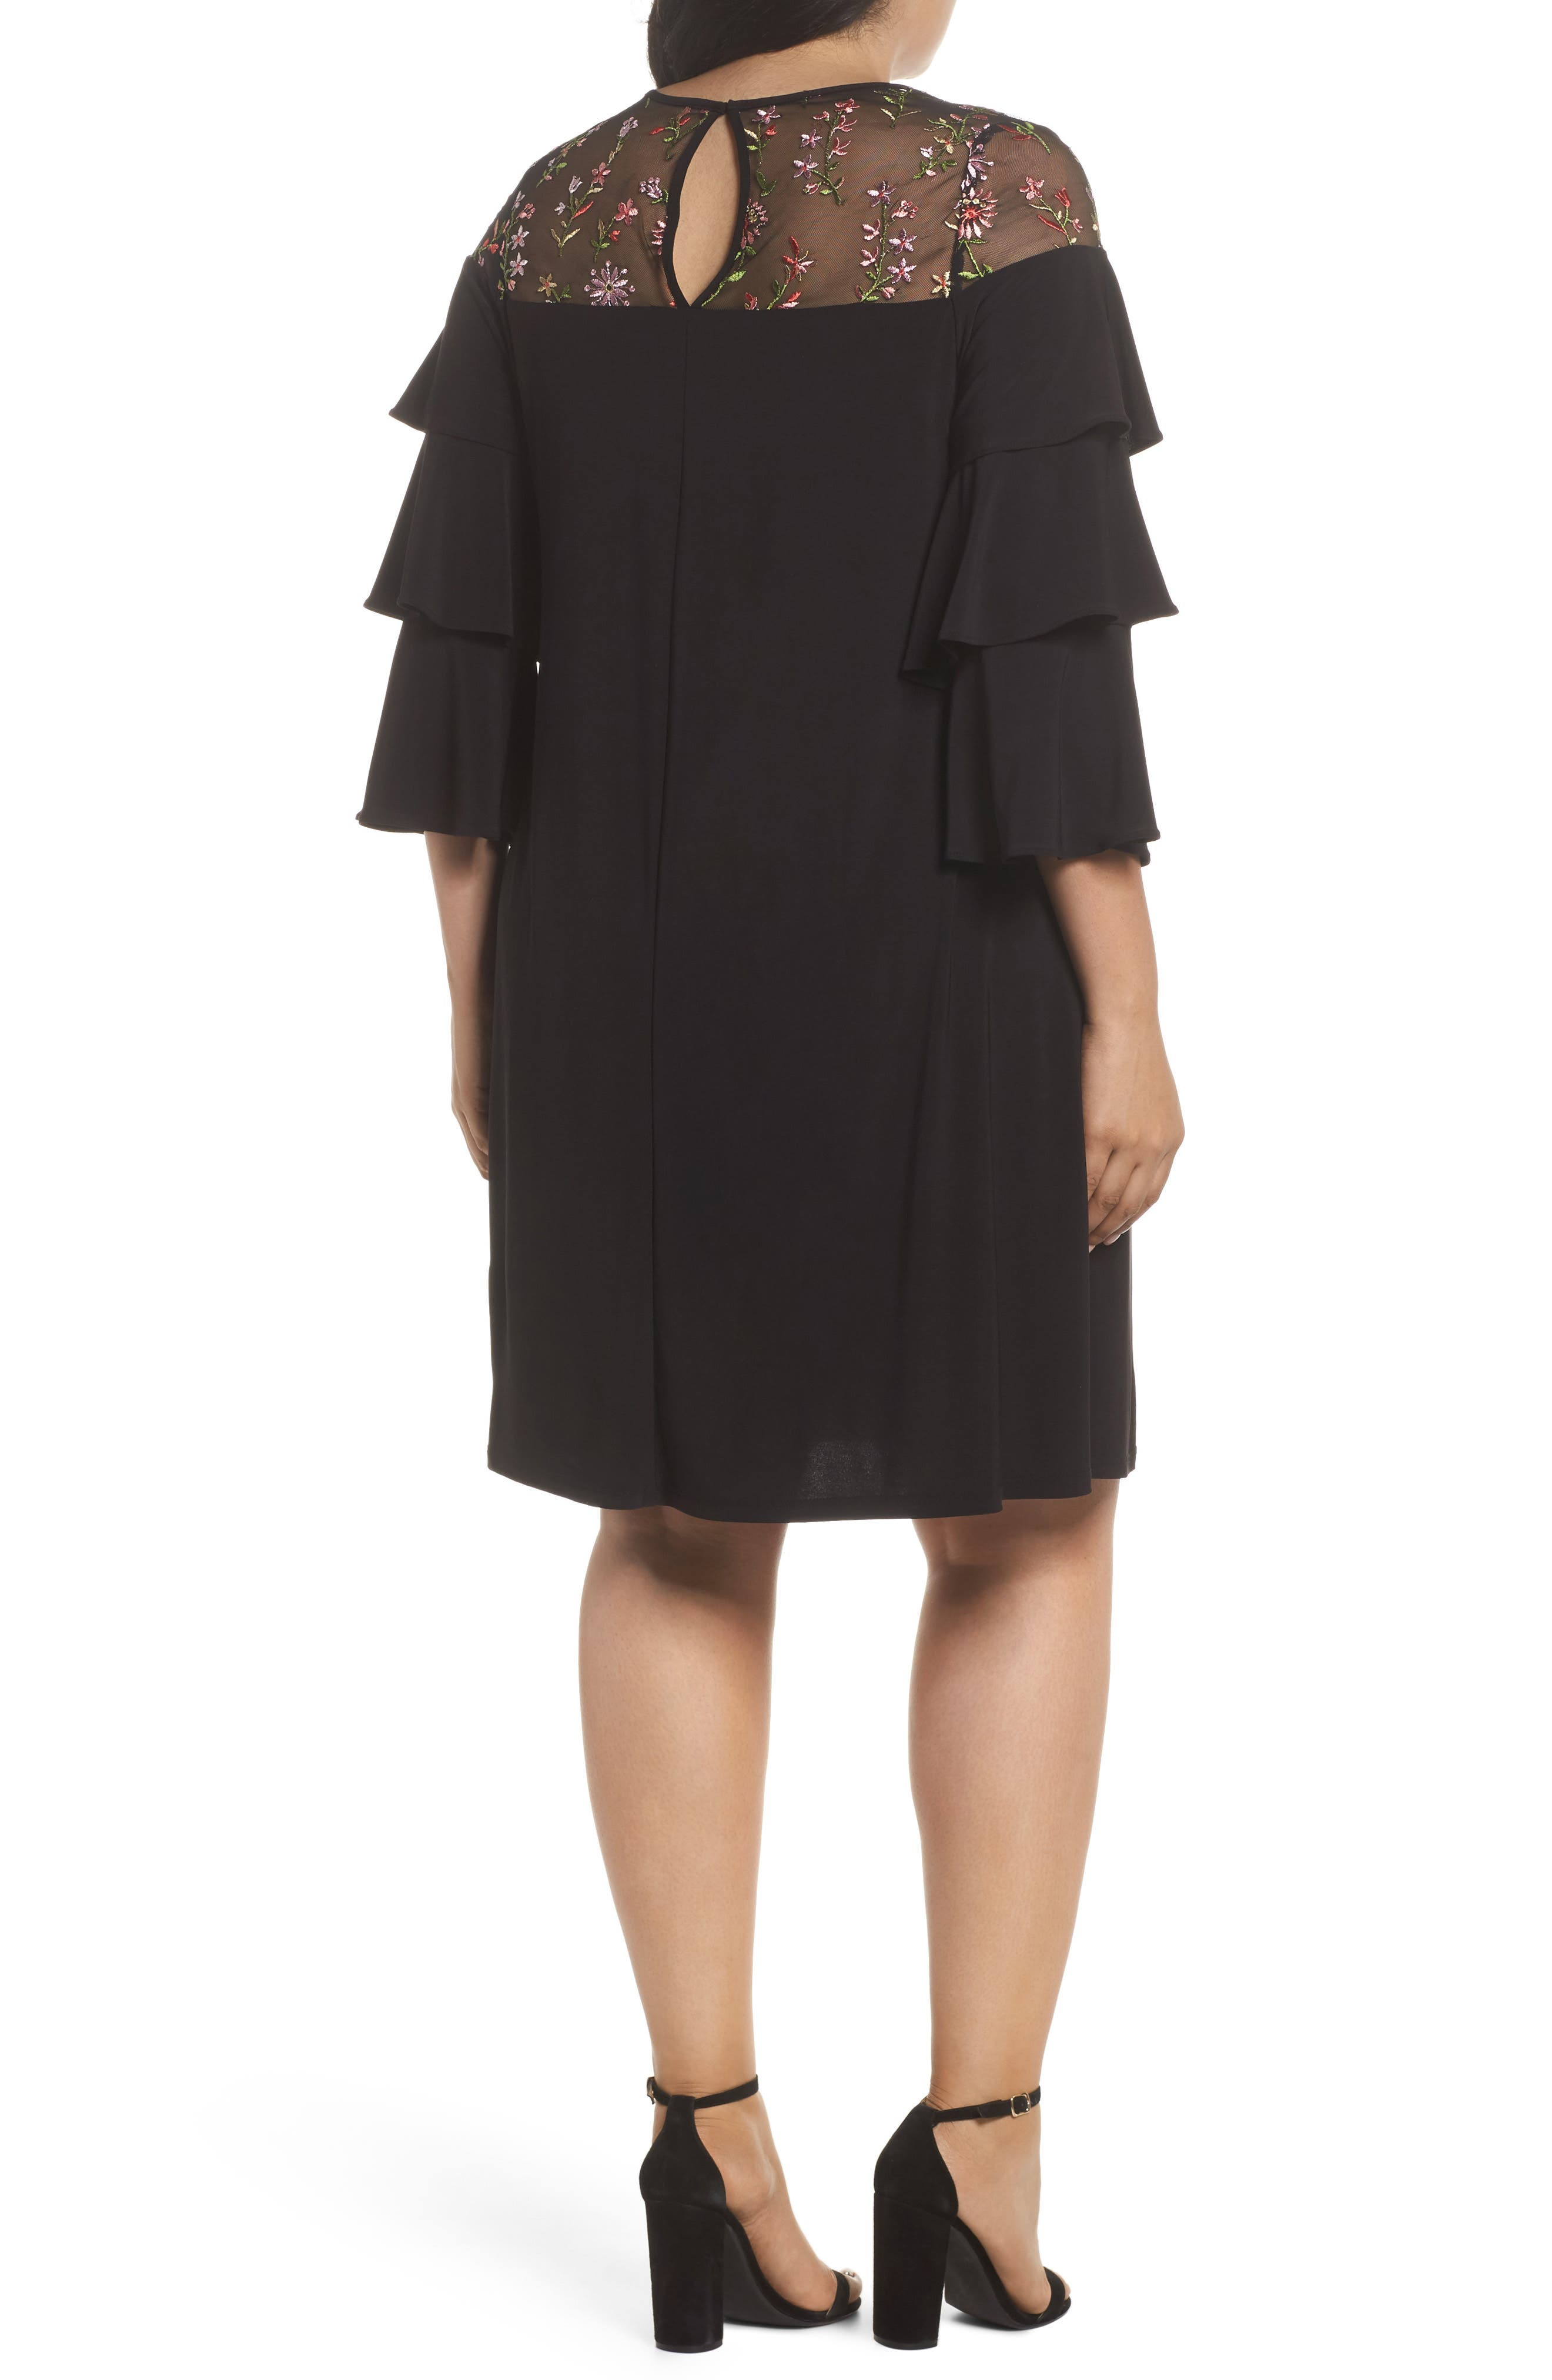 Ruffled Sleeve Embroidered Yoke A-Line Dress,                             Alternate thumbnail 2, color,                             Black/ Coral